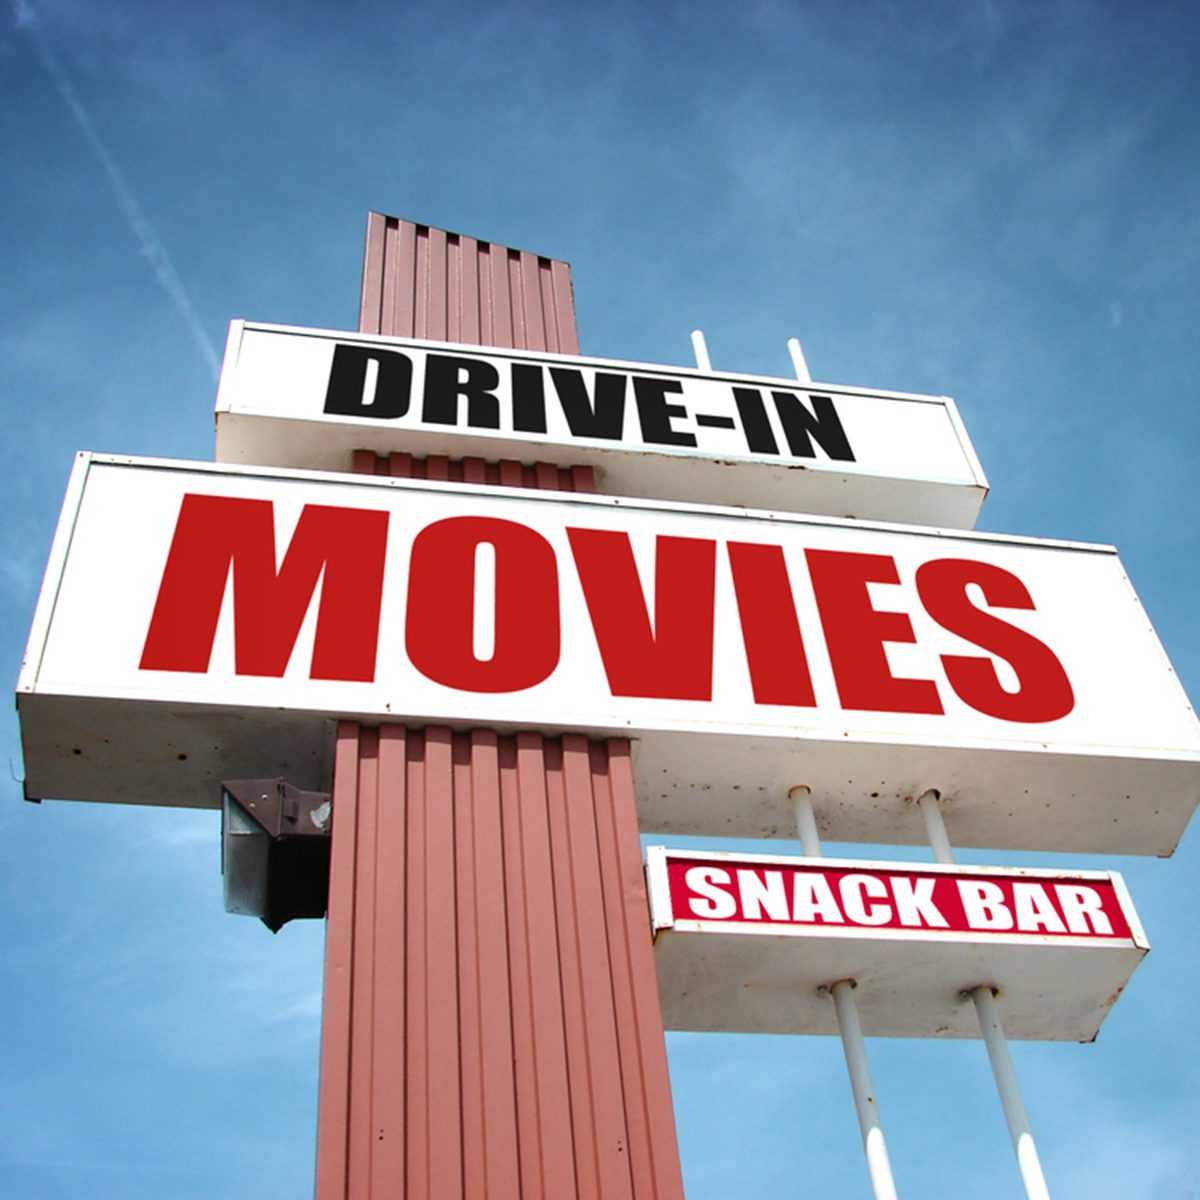 drive-in movies sign